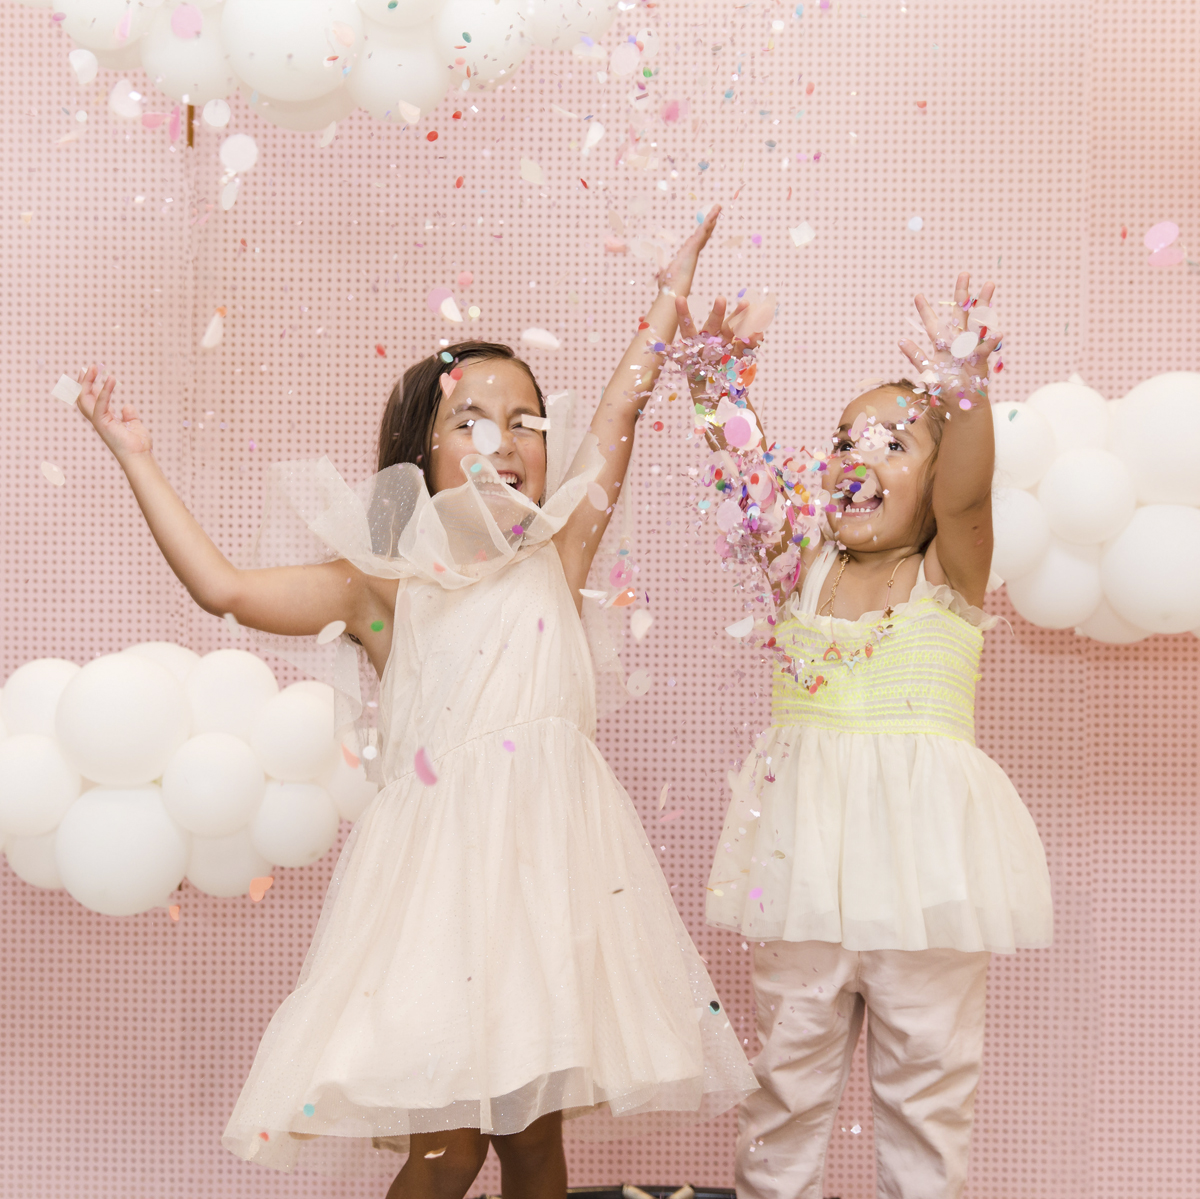 pink sky balloon clouds photo booth kids party